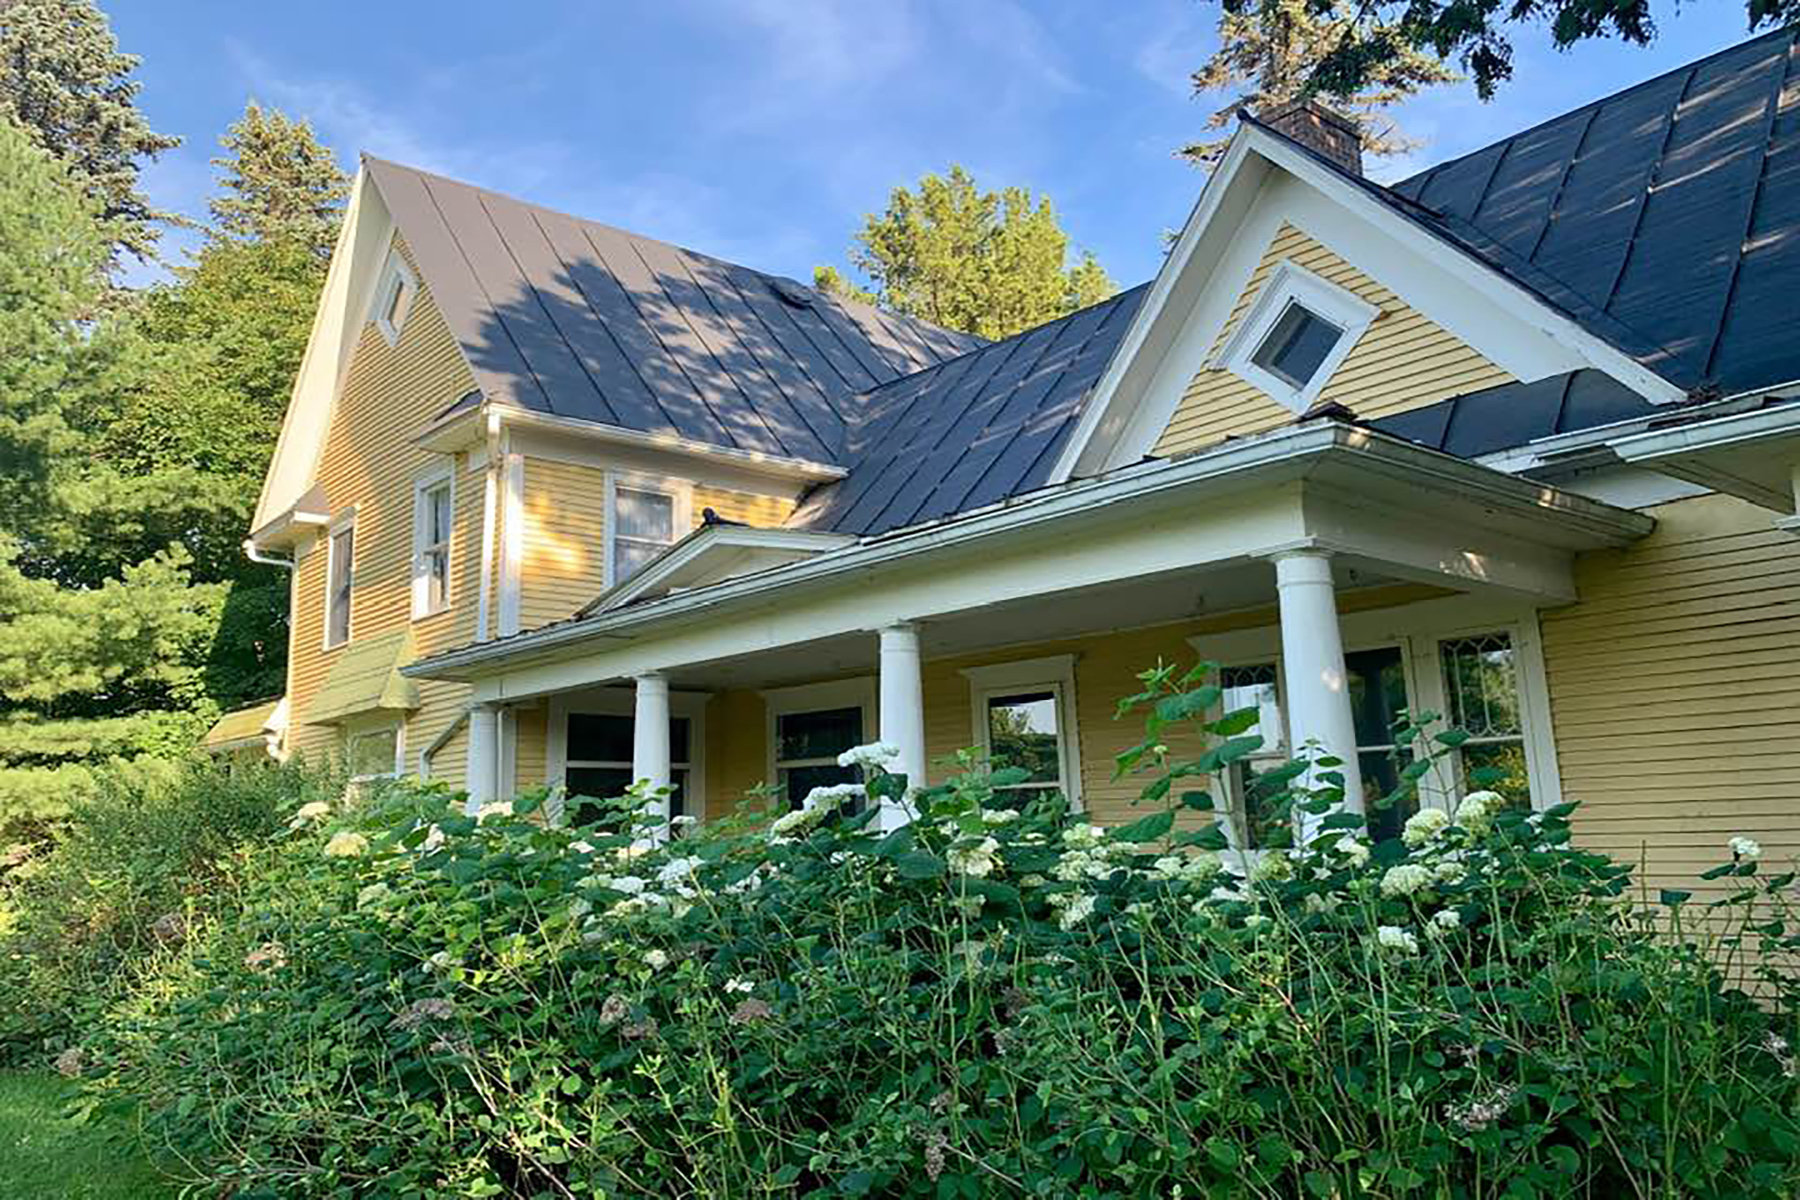 Single Family Homes for Sale at Ingham Township 1905 E. Dexter Trail Dansville, Michigan 48819 United States